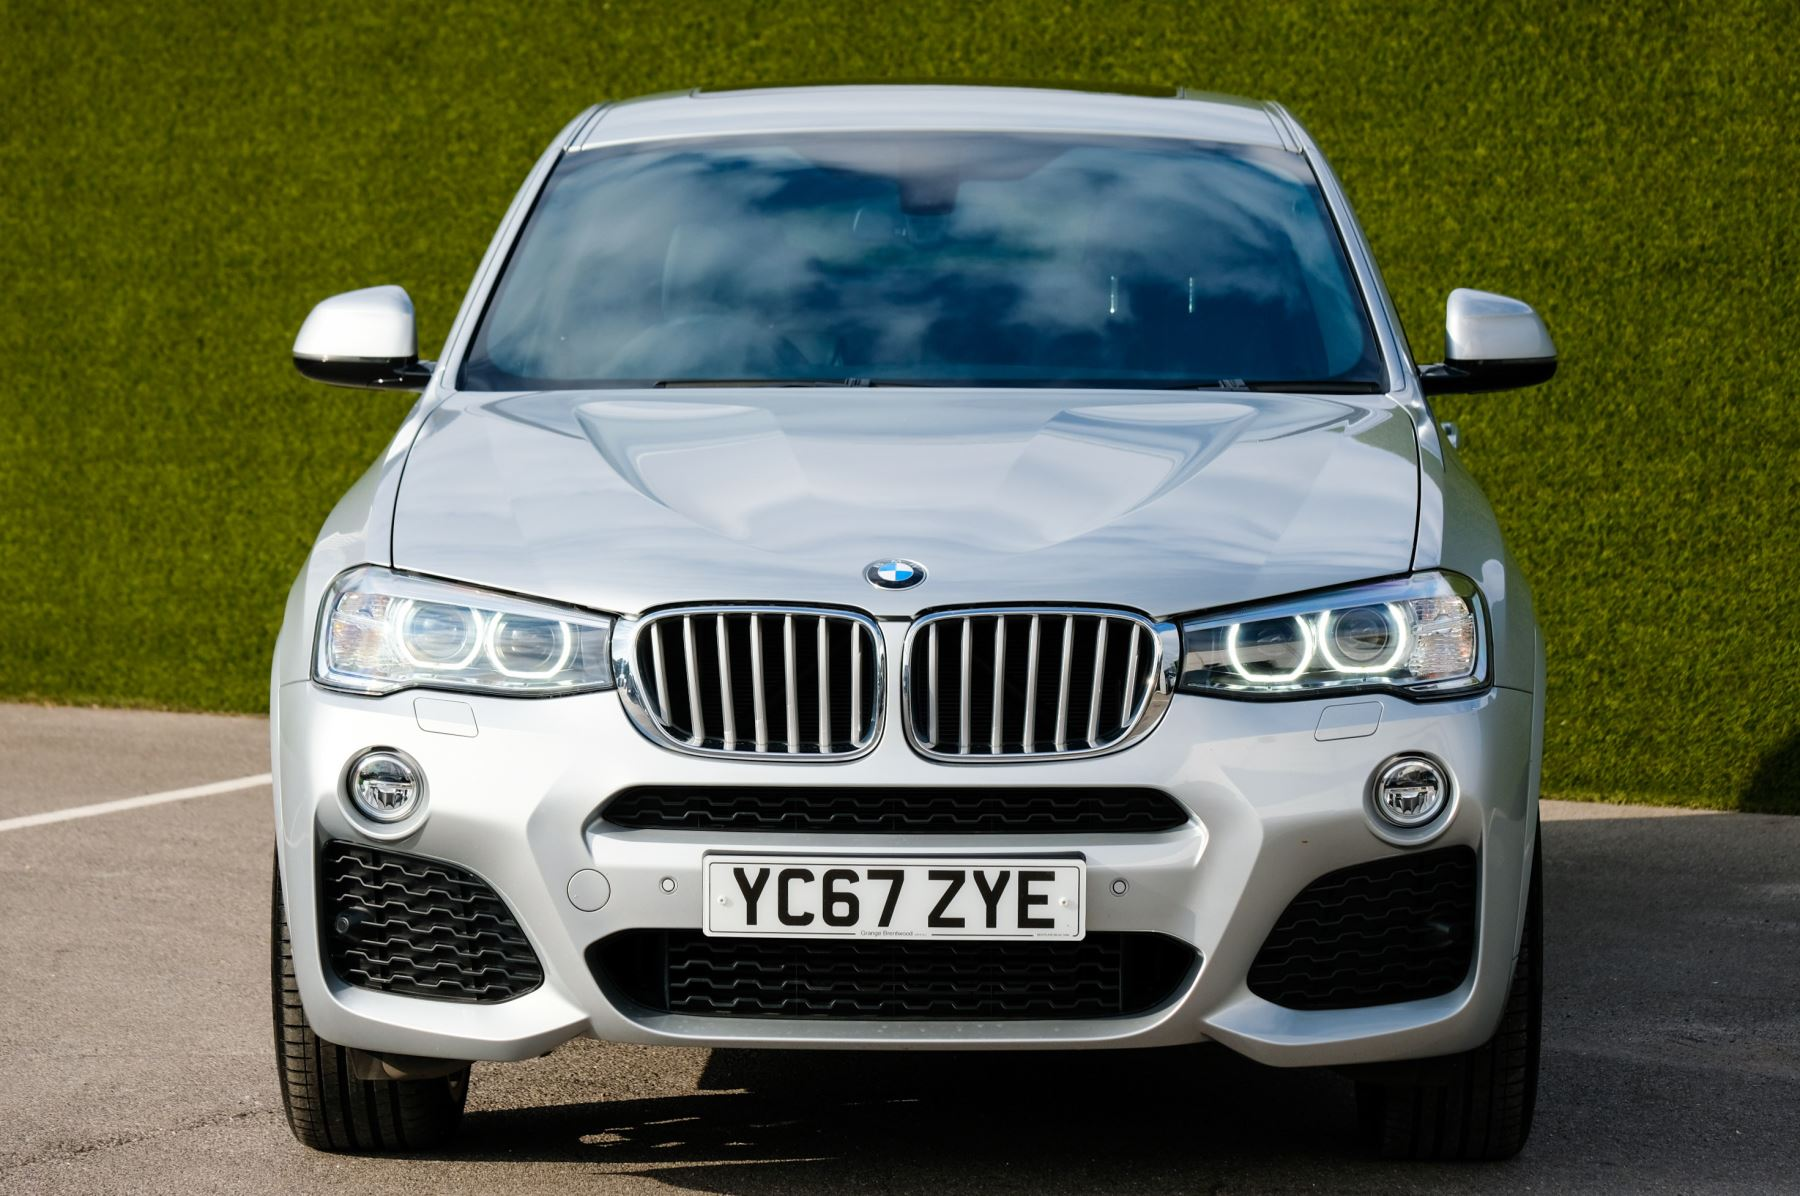 BMW X4 xDrive30d M Sport 5dr Step - M Sport Plus Package - Interior Comfort Package - Elec Glass Sunroof -  image 2